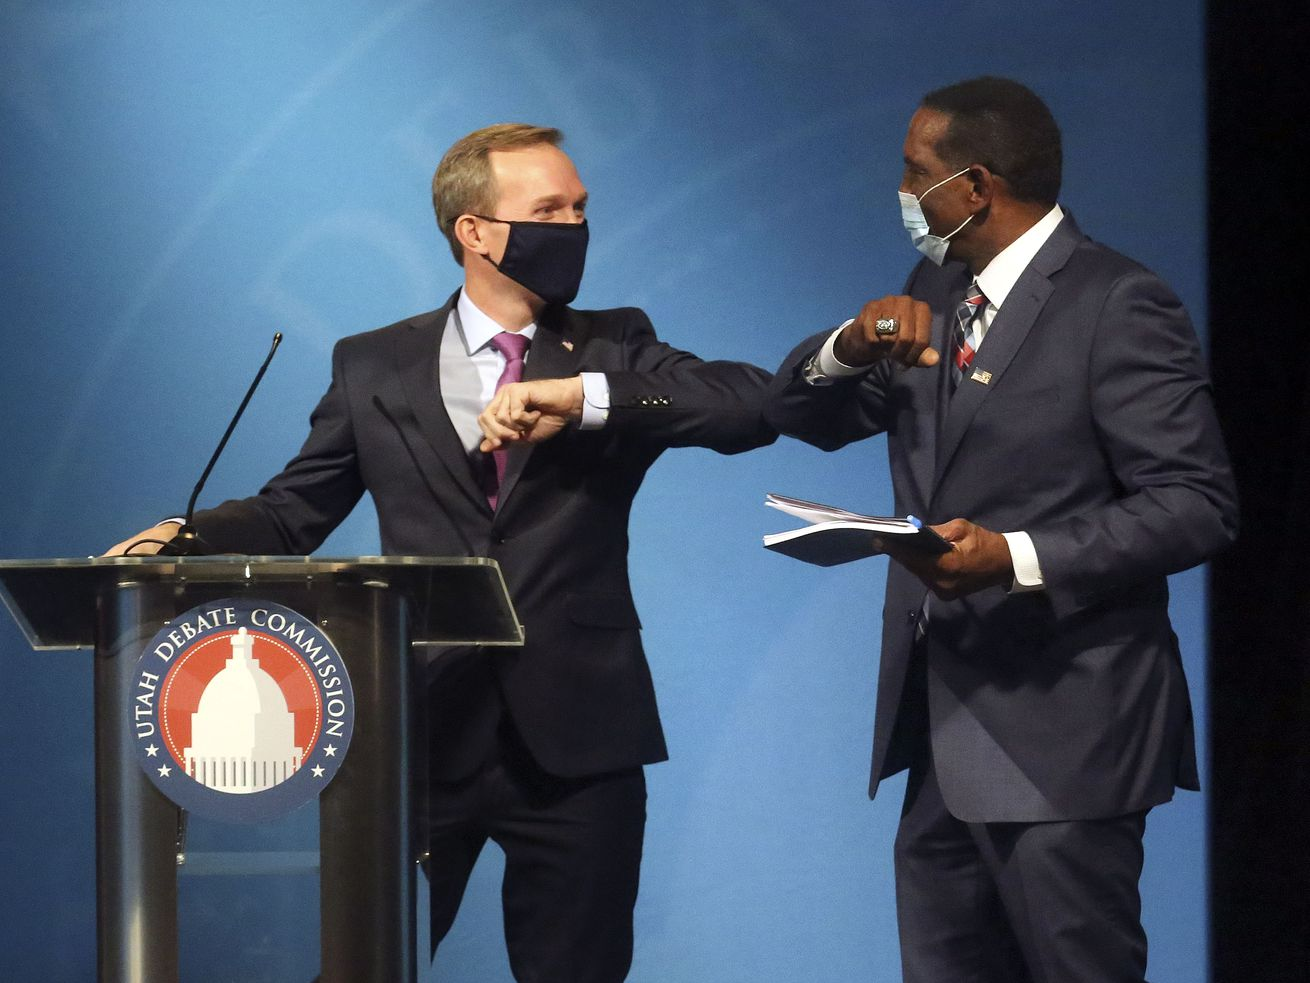 Rep. Ben McAdams, D-Utah, and Burgess Owens bump elbows after participating in the 4th Congressional District debate at the Triad Center in Salt Lake City on Monday, Oct. 12, 2020.